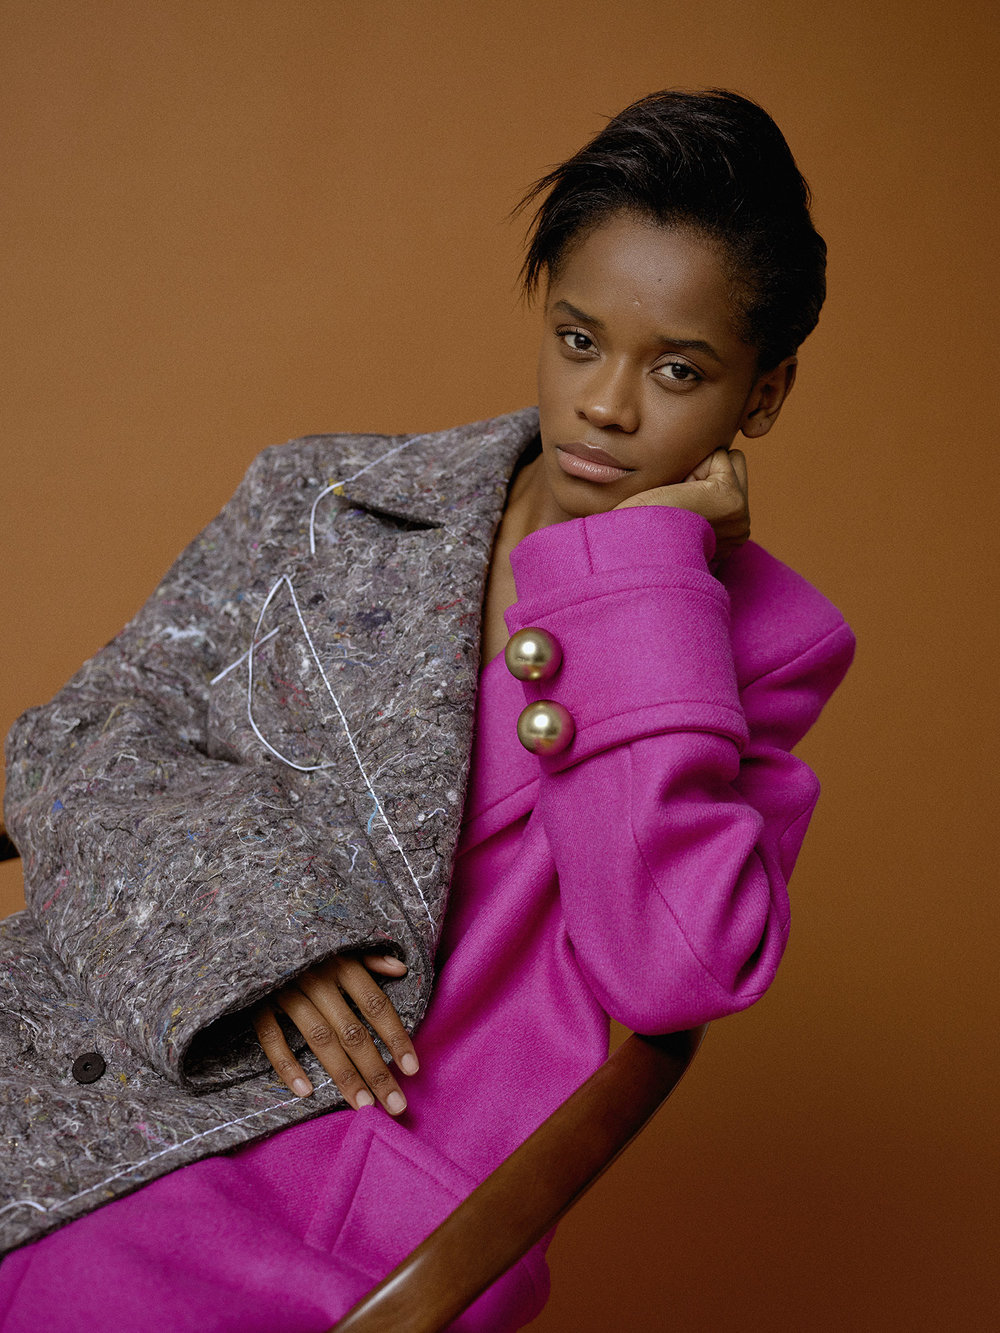 181119_ES_Letitia Wright_02_077_FINAL_RGB.jpg